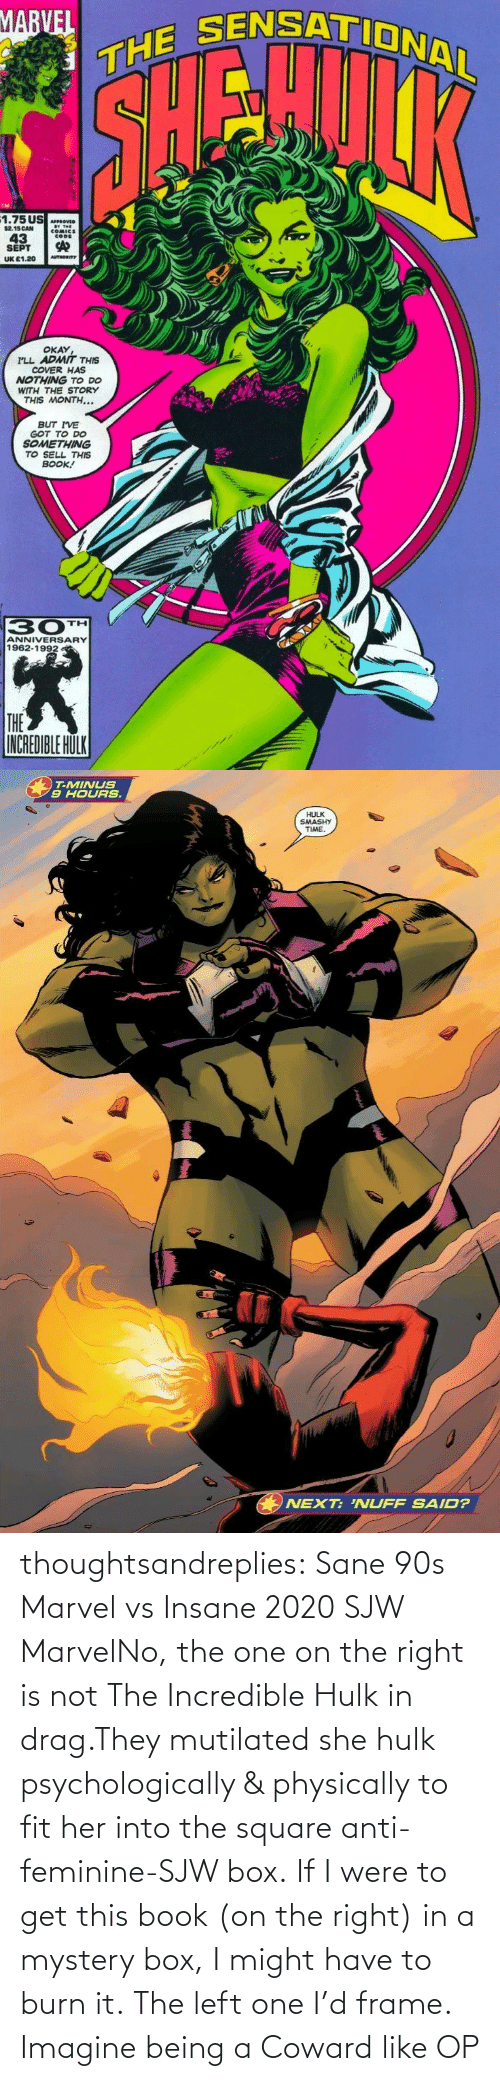 Mystery: thoughtsandreplies:  Sane 90s Marvel vs Insane 2020 SJW MarvelNo, the one on the right is not The Incredible Hulk in drag.They mutilated she hulk psychologically & physically to fit her into the square anti-feminine-SJW box. If I were to get this book (on the right) in a mystery box, I might have to burn it. The left one I'd frame.    Imagine being a Coward like OP